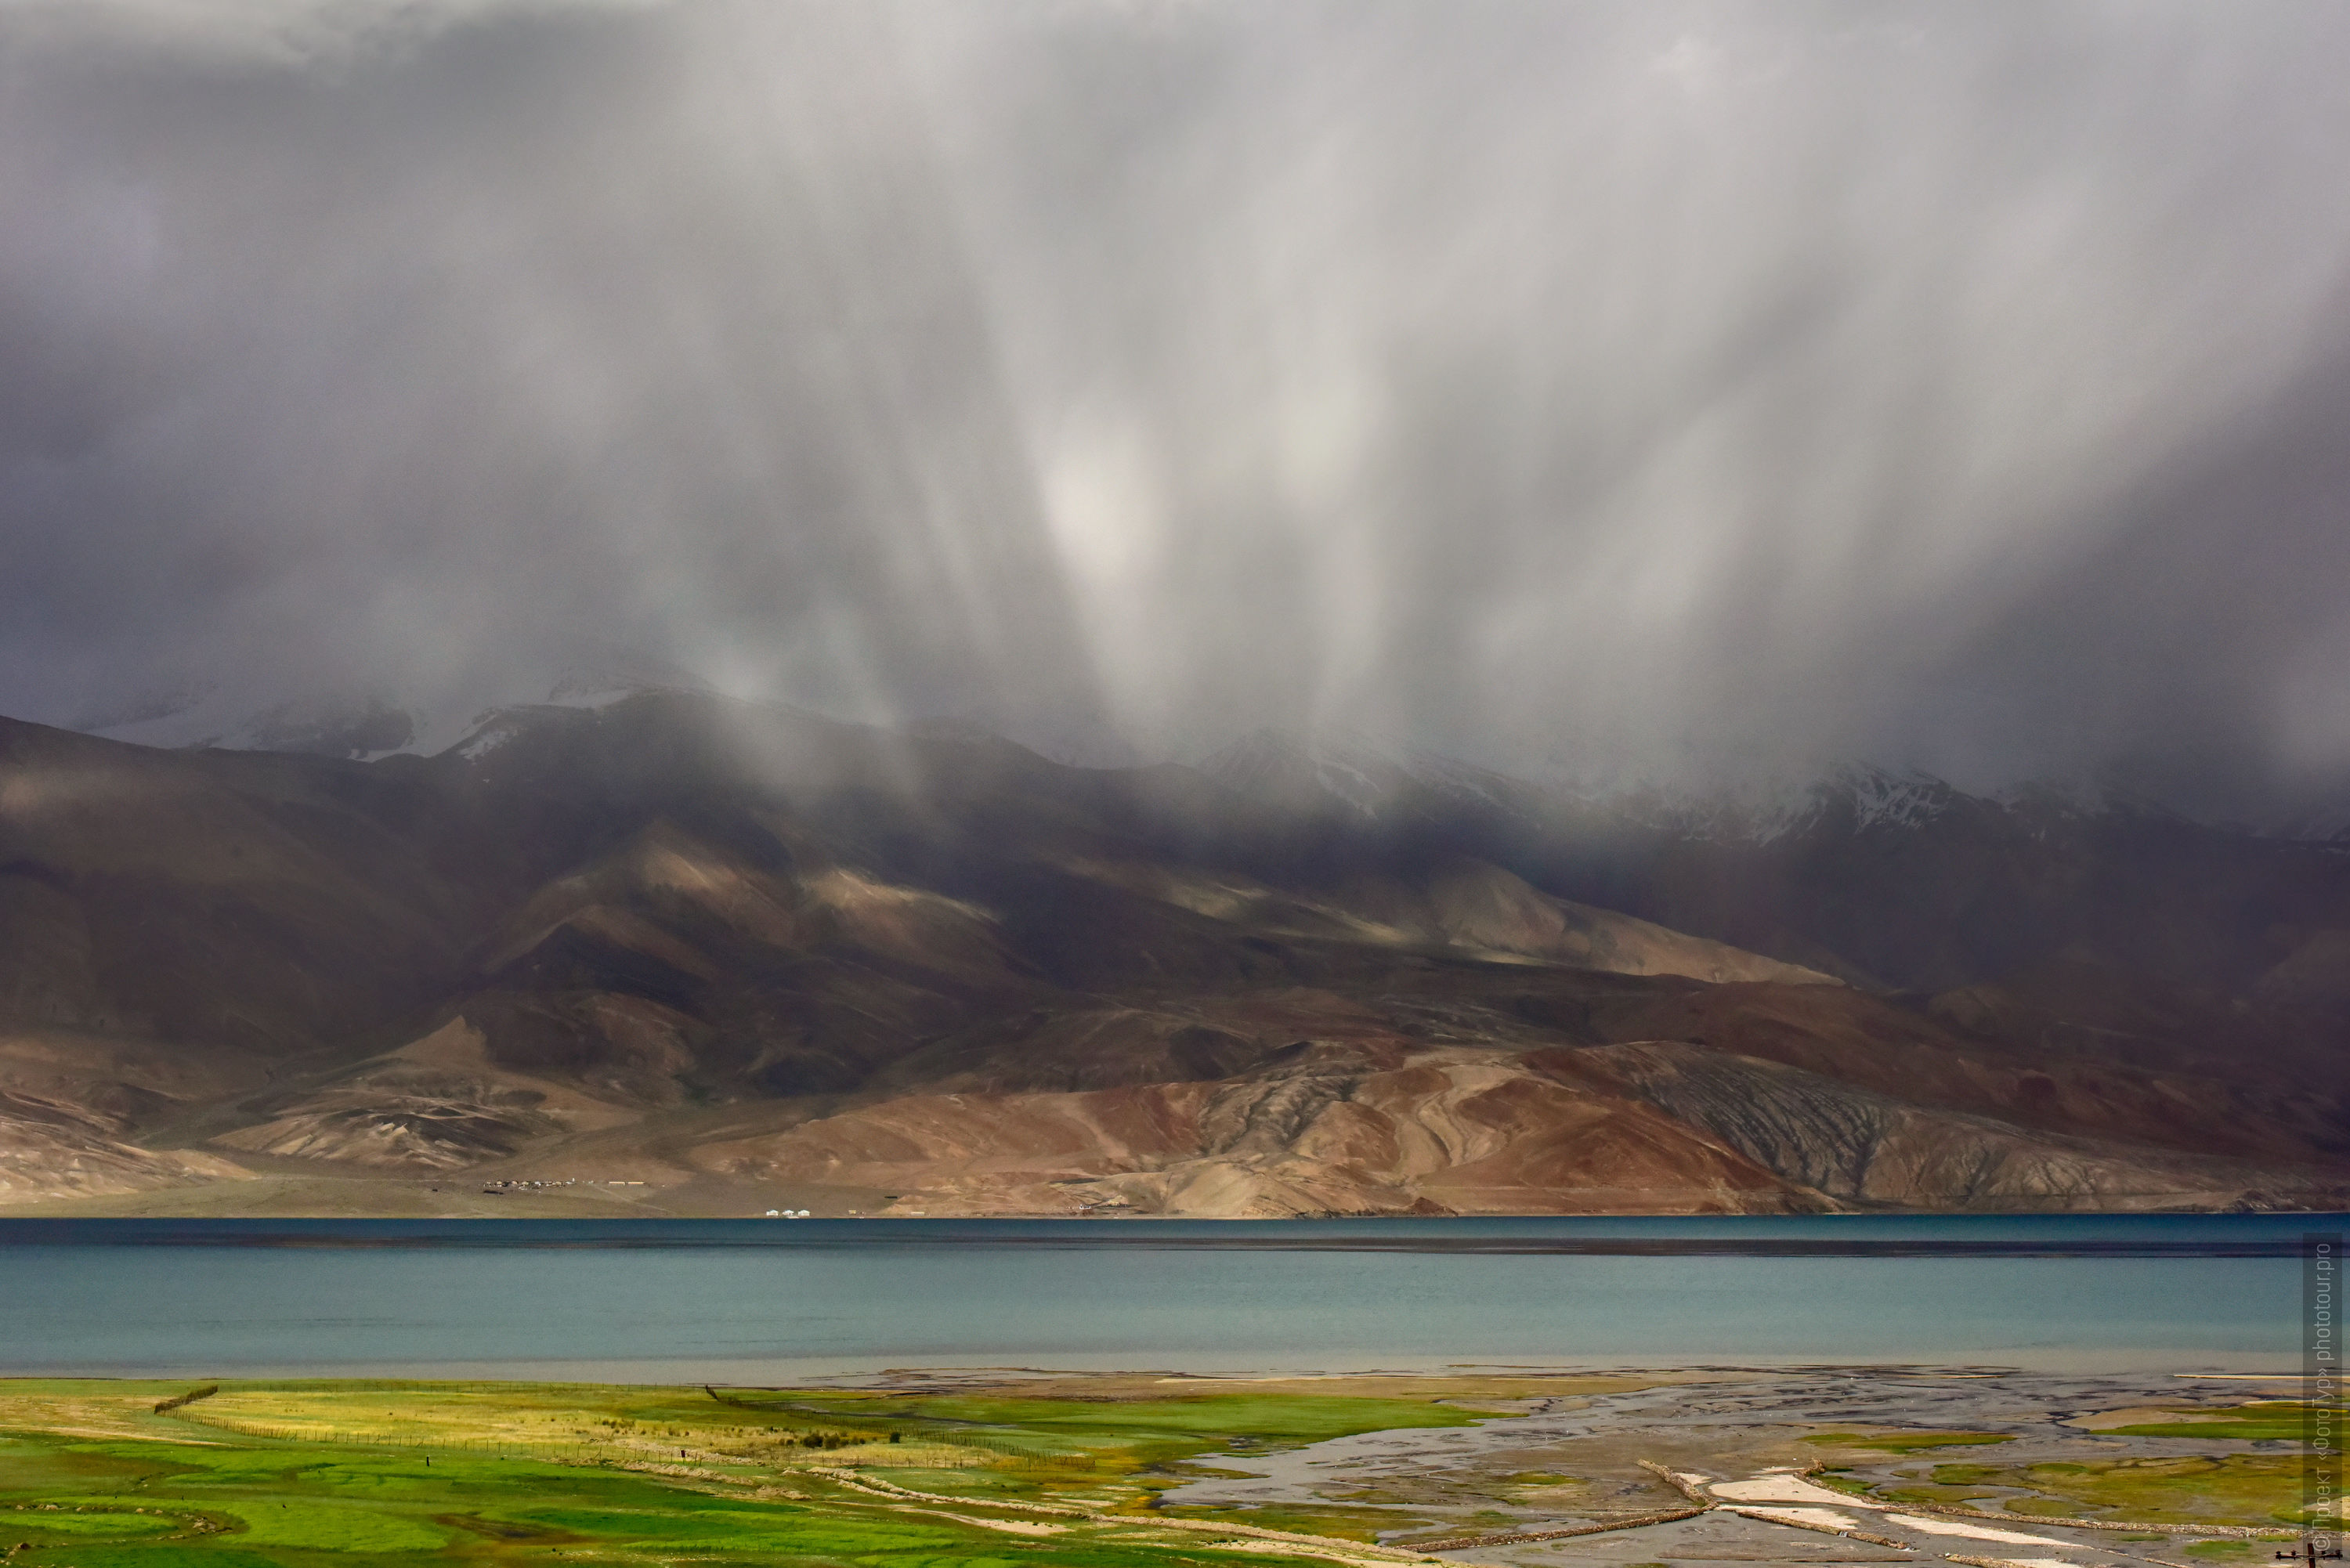 hunderstorm on Lake Tso Moriri. Photo tour / tour Tibet of Lake-1: Pangong, Tso Moriri, Tso Kar, Tso Chiagar, Dance of Tsam on Lake Pangong, 19.06. - 28.06.2021.